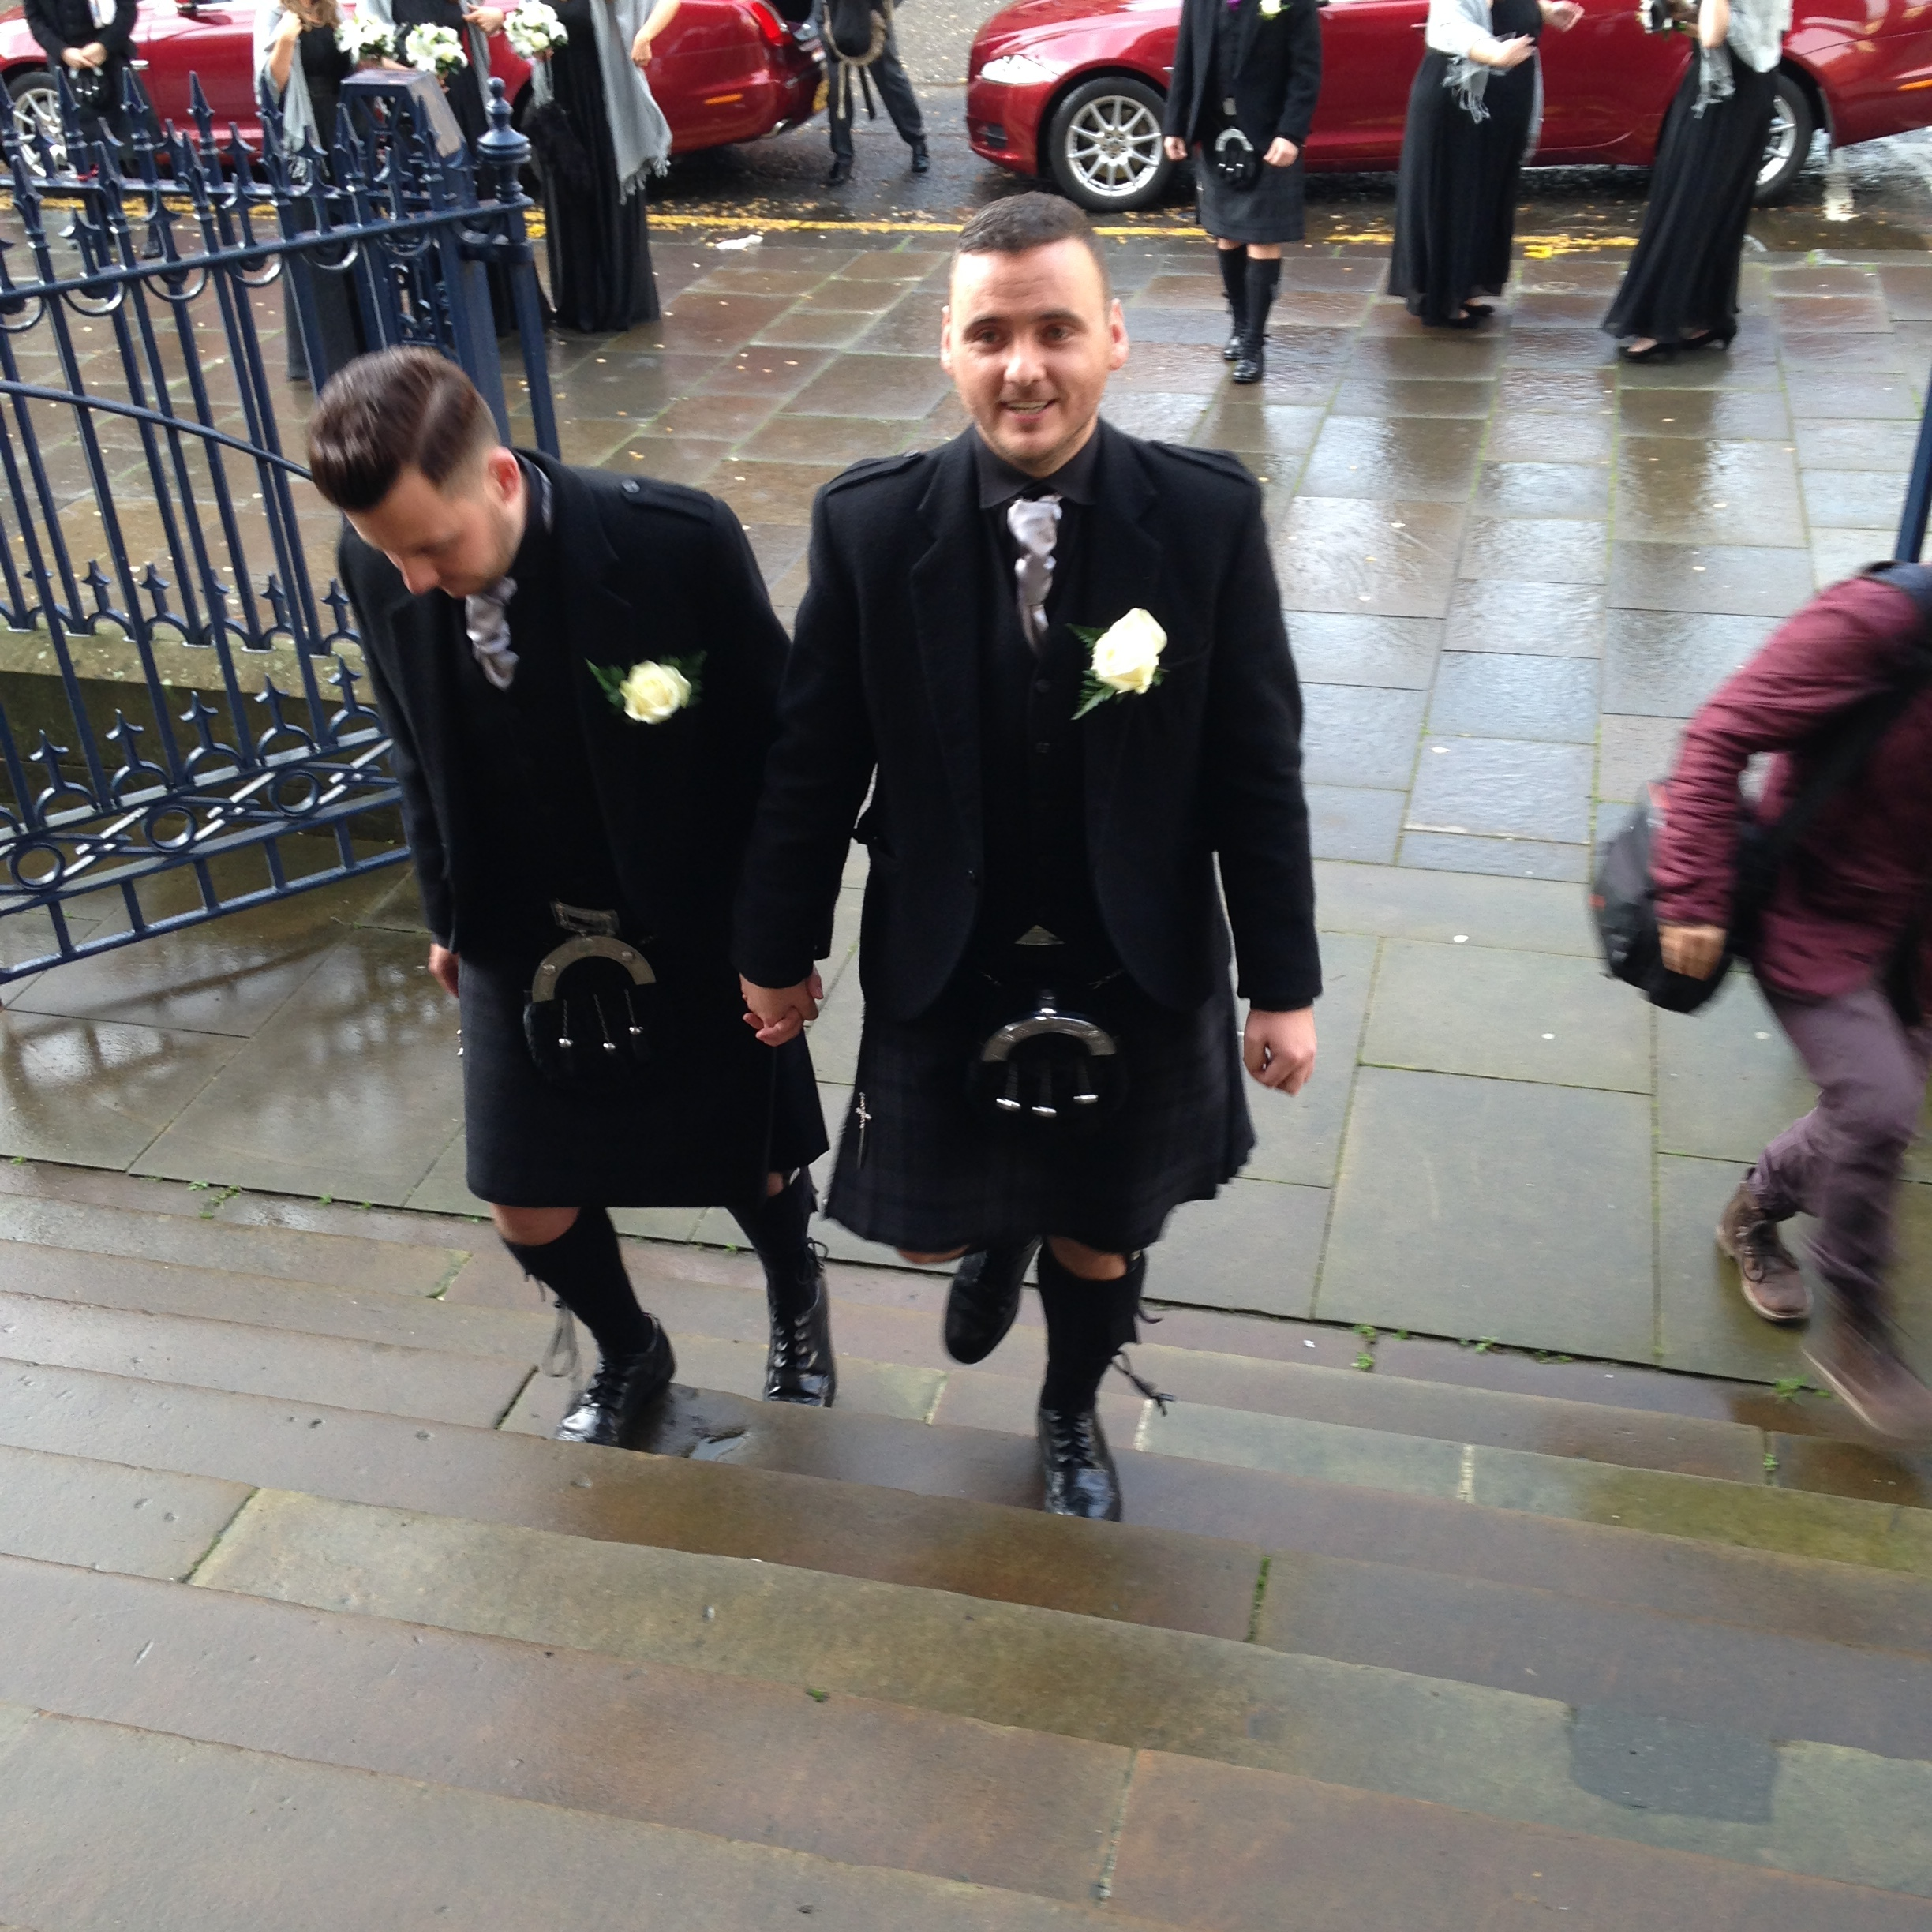 Gay weddings scotland 2015